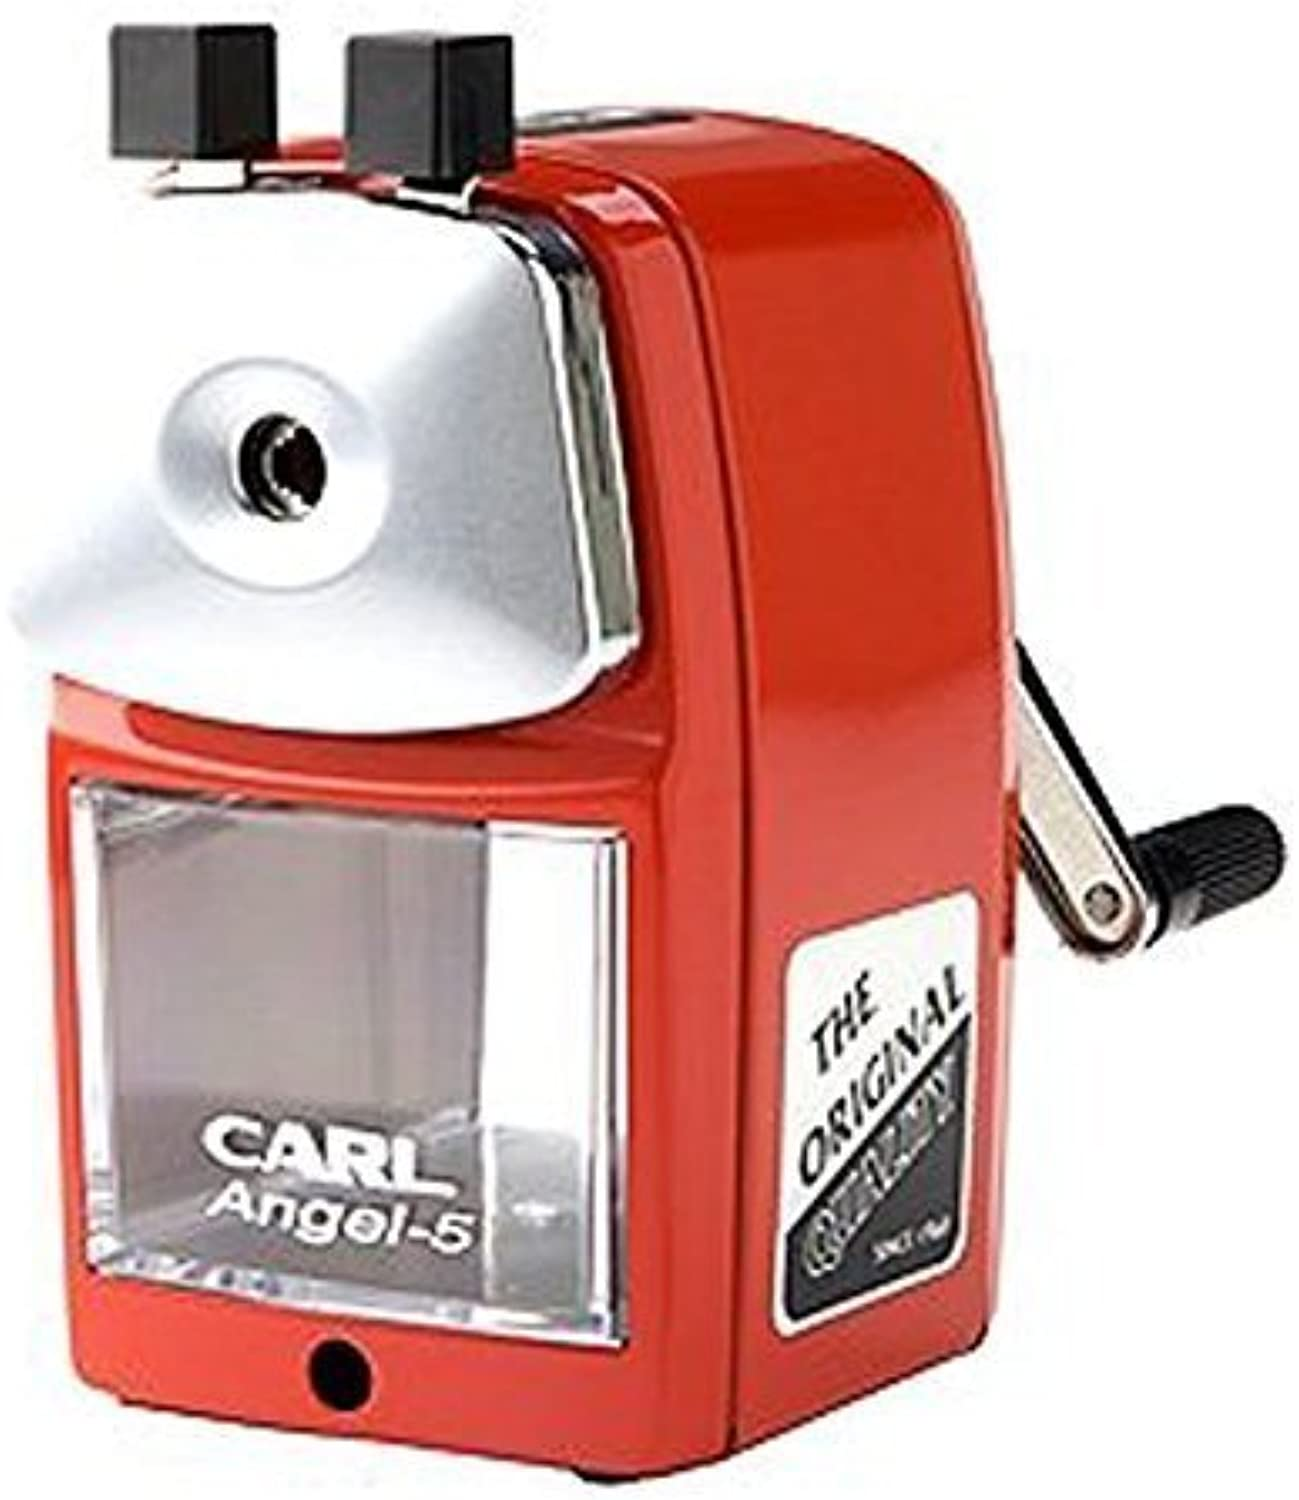 Carl Angel-5 Pencil Sharpener, rot, Quiet for Office, Home and School by Carl B018ORAFK0 | Sale